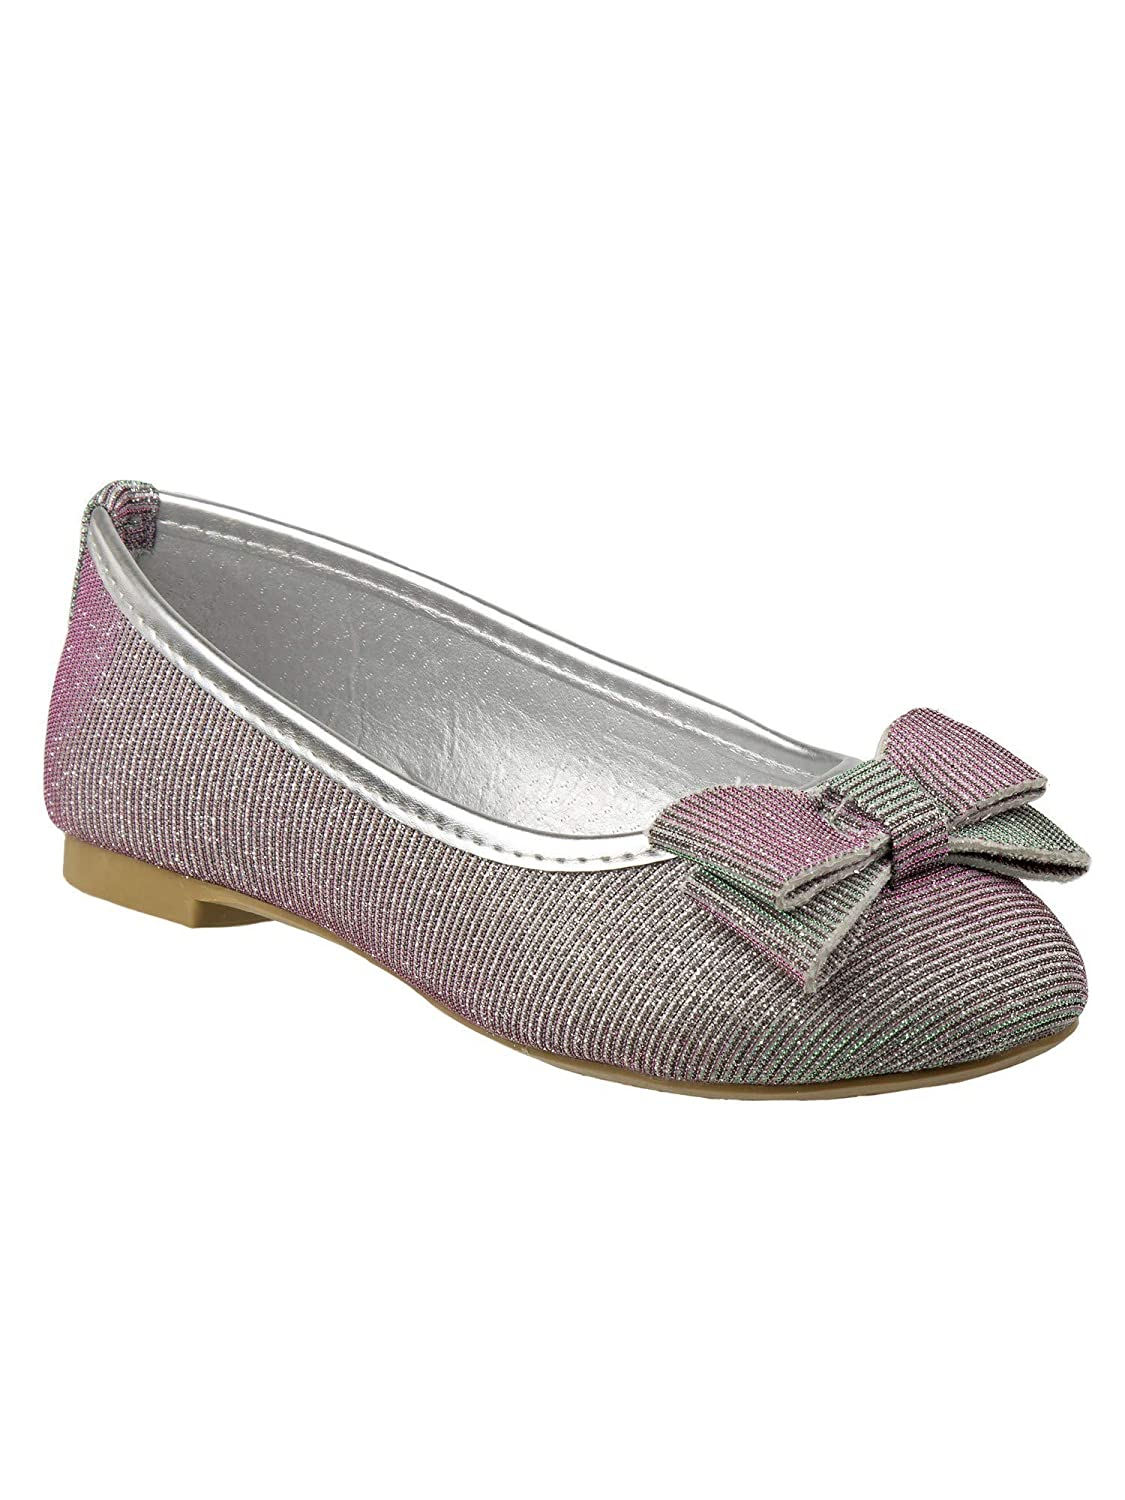 Laura Ashley Little Girls Silver Shimmery Textured Bow Accent Flats 5-10 Toddler